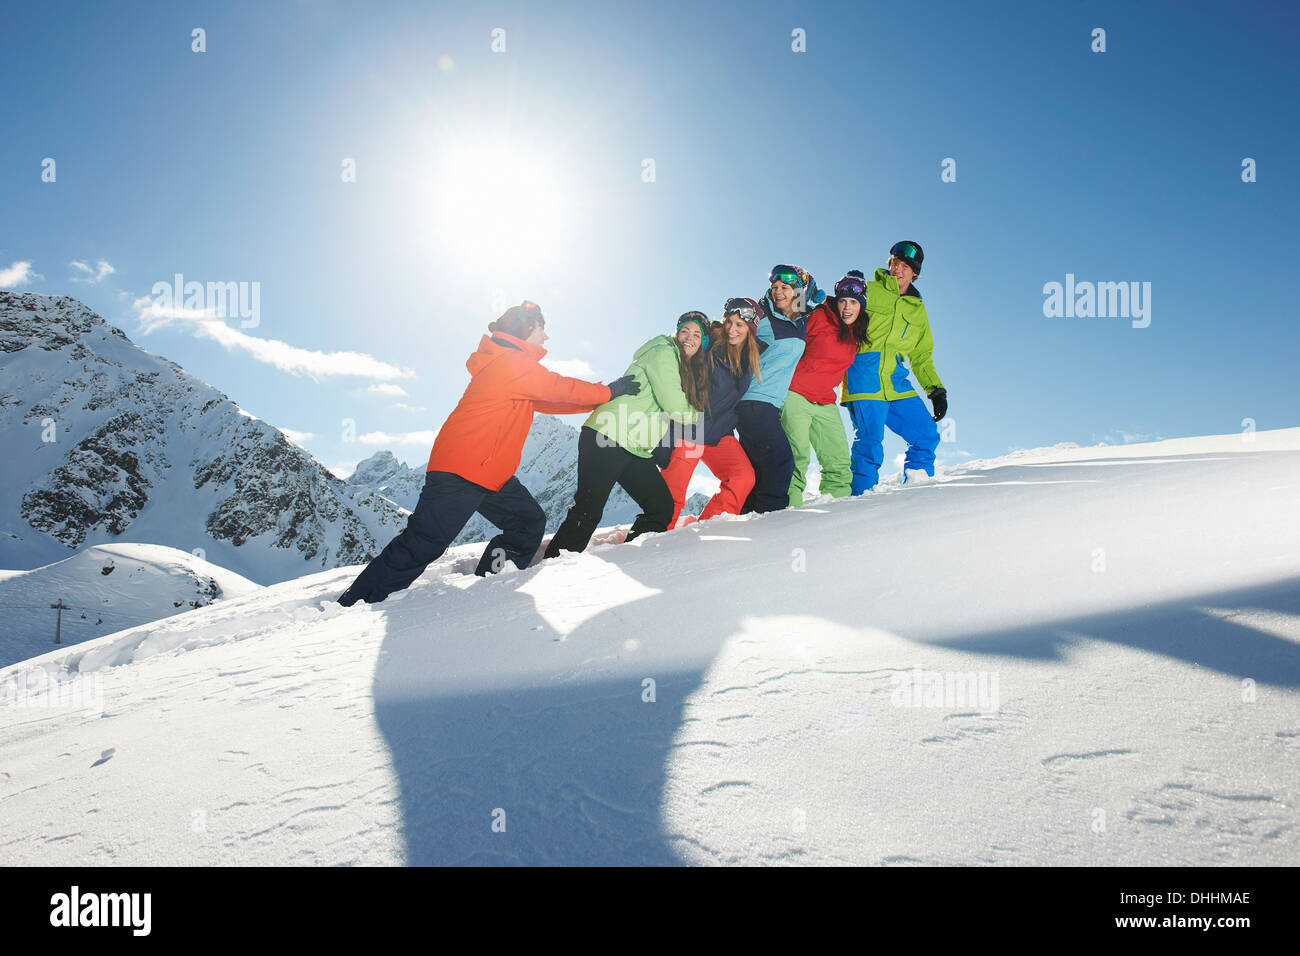 Man pushing friends uphill in snow, Kuhtai, Austria - Stock Image